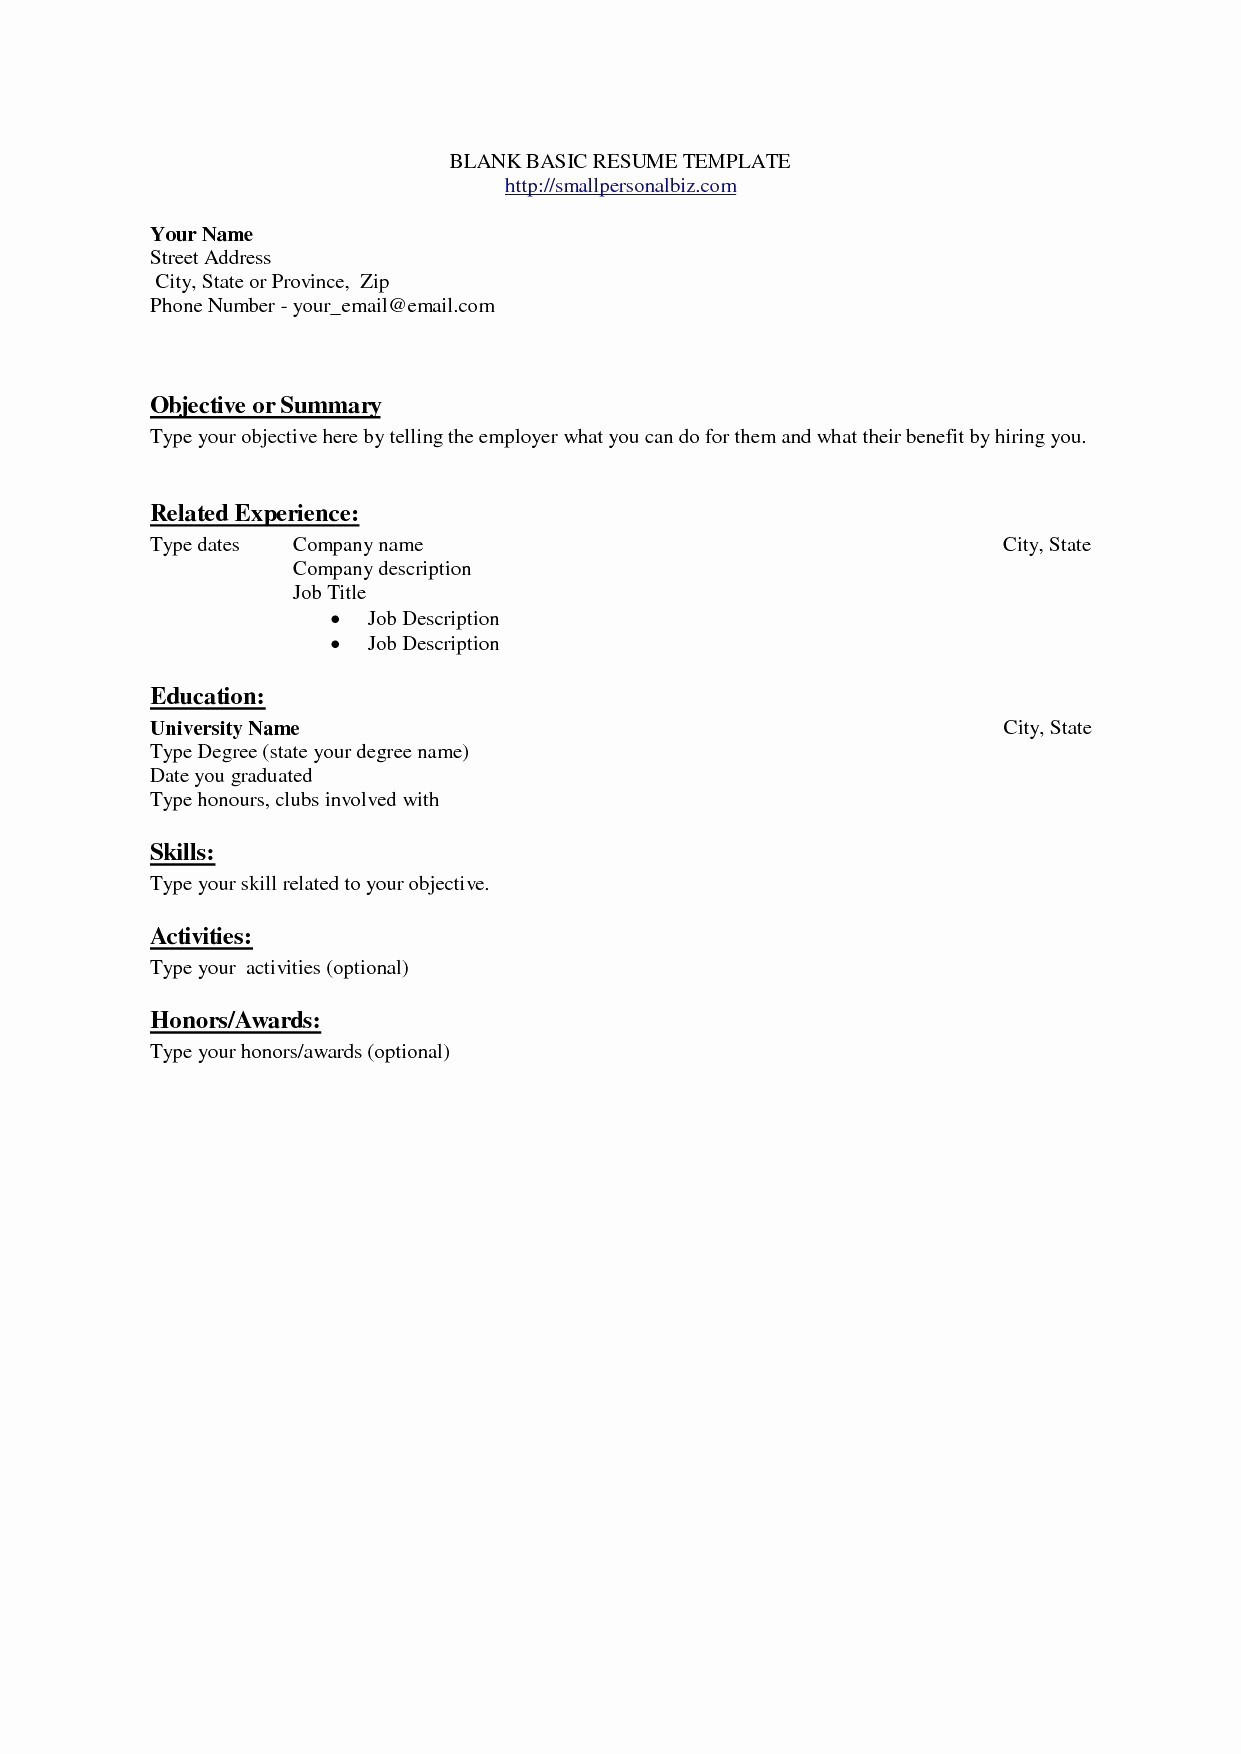 hotel housekeeping resume Collection-Hotel Housekeeping Resume 19 Hotel Housekeeping Resume 1-e